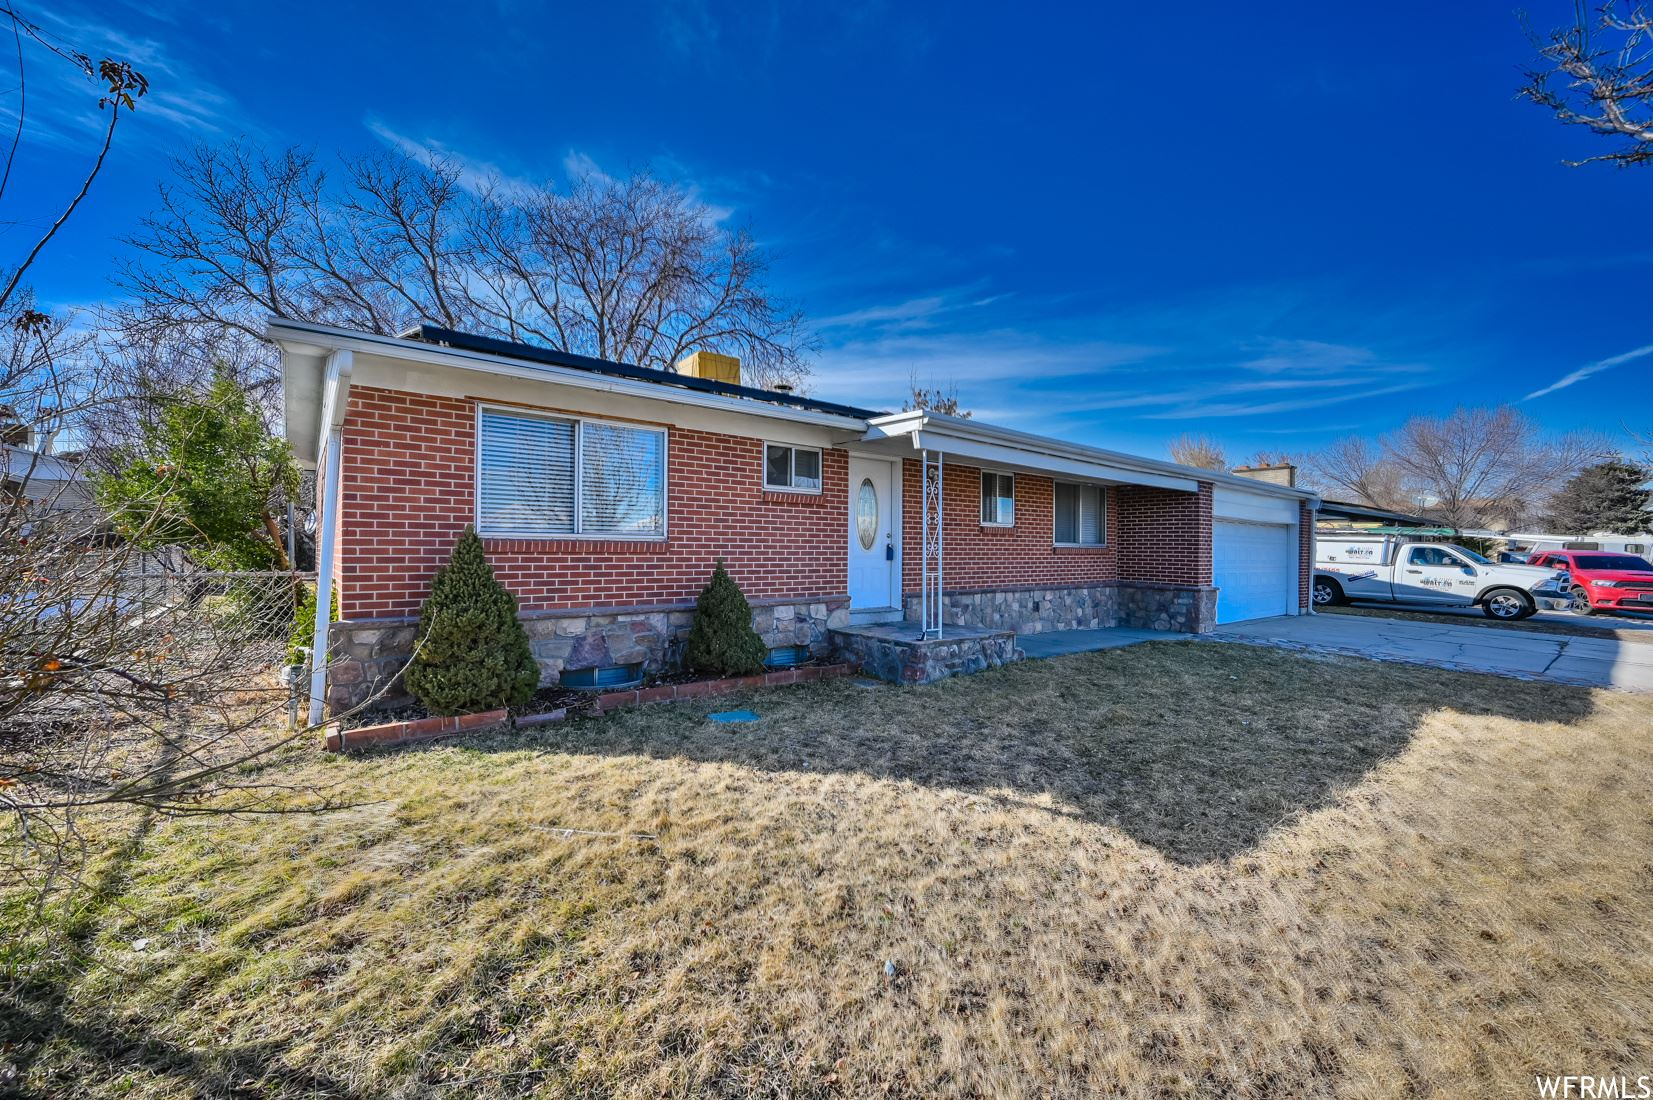 Photo of 4680 S 3200 W, West Valley City, UT 84119 (MLS # 1727457)